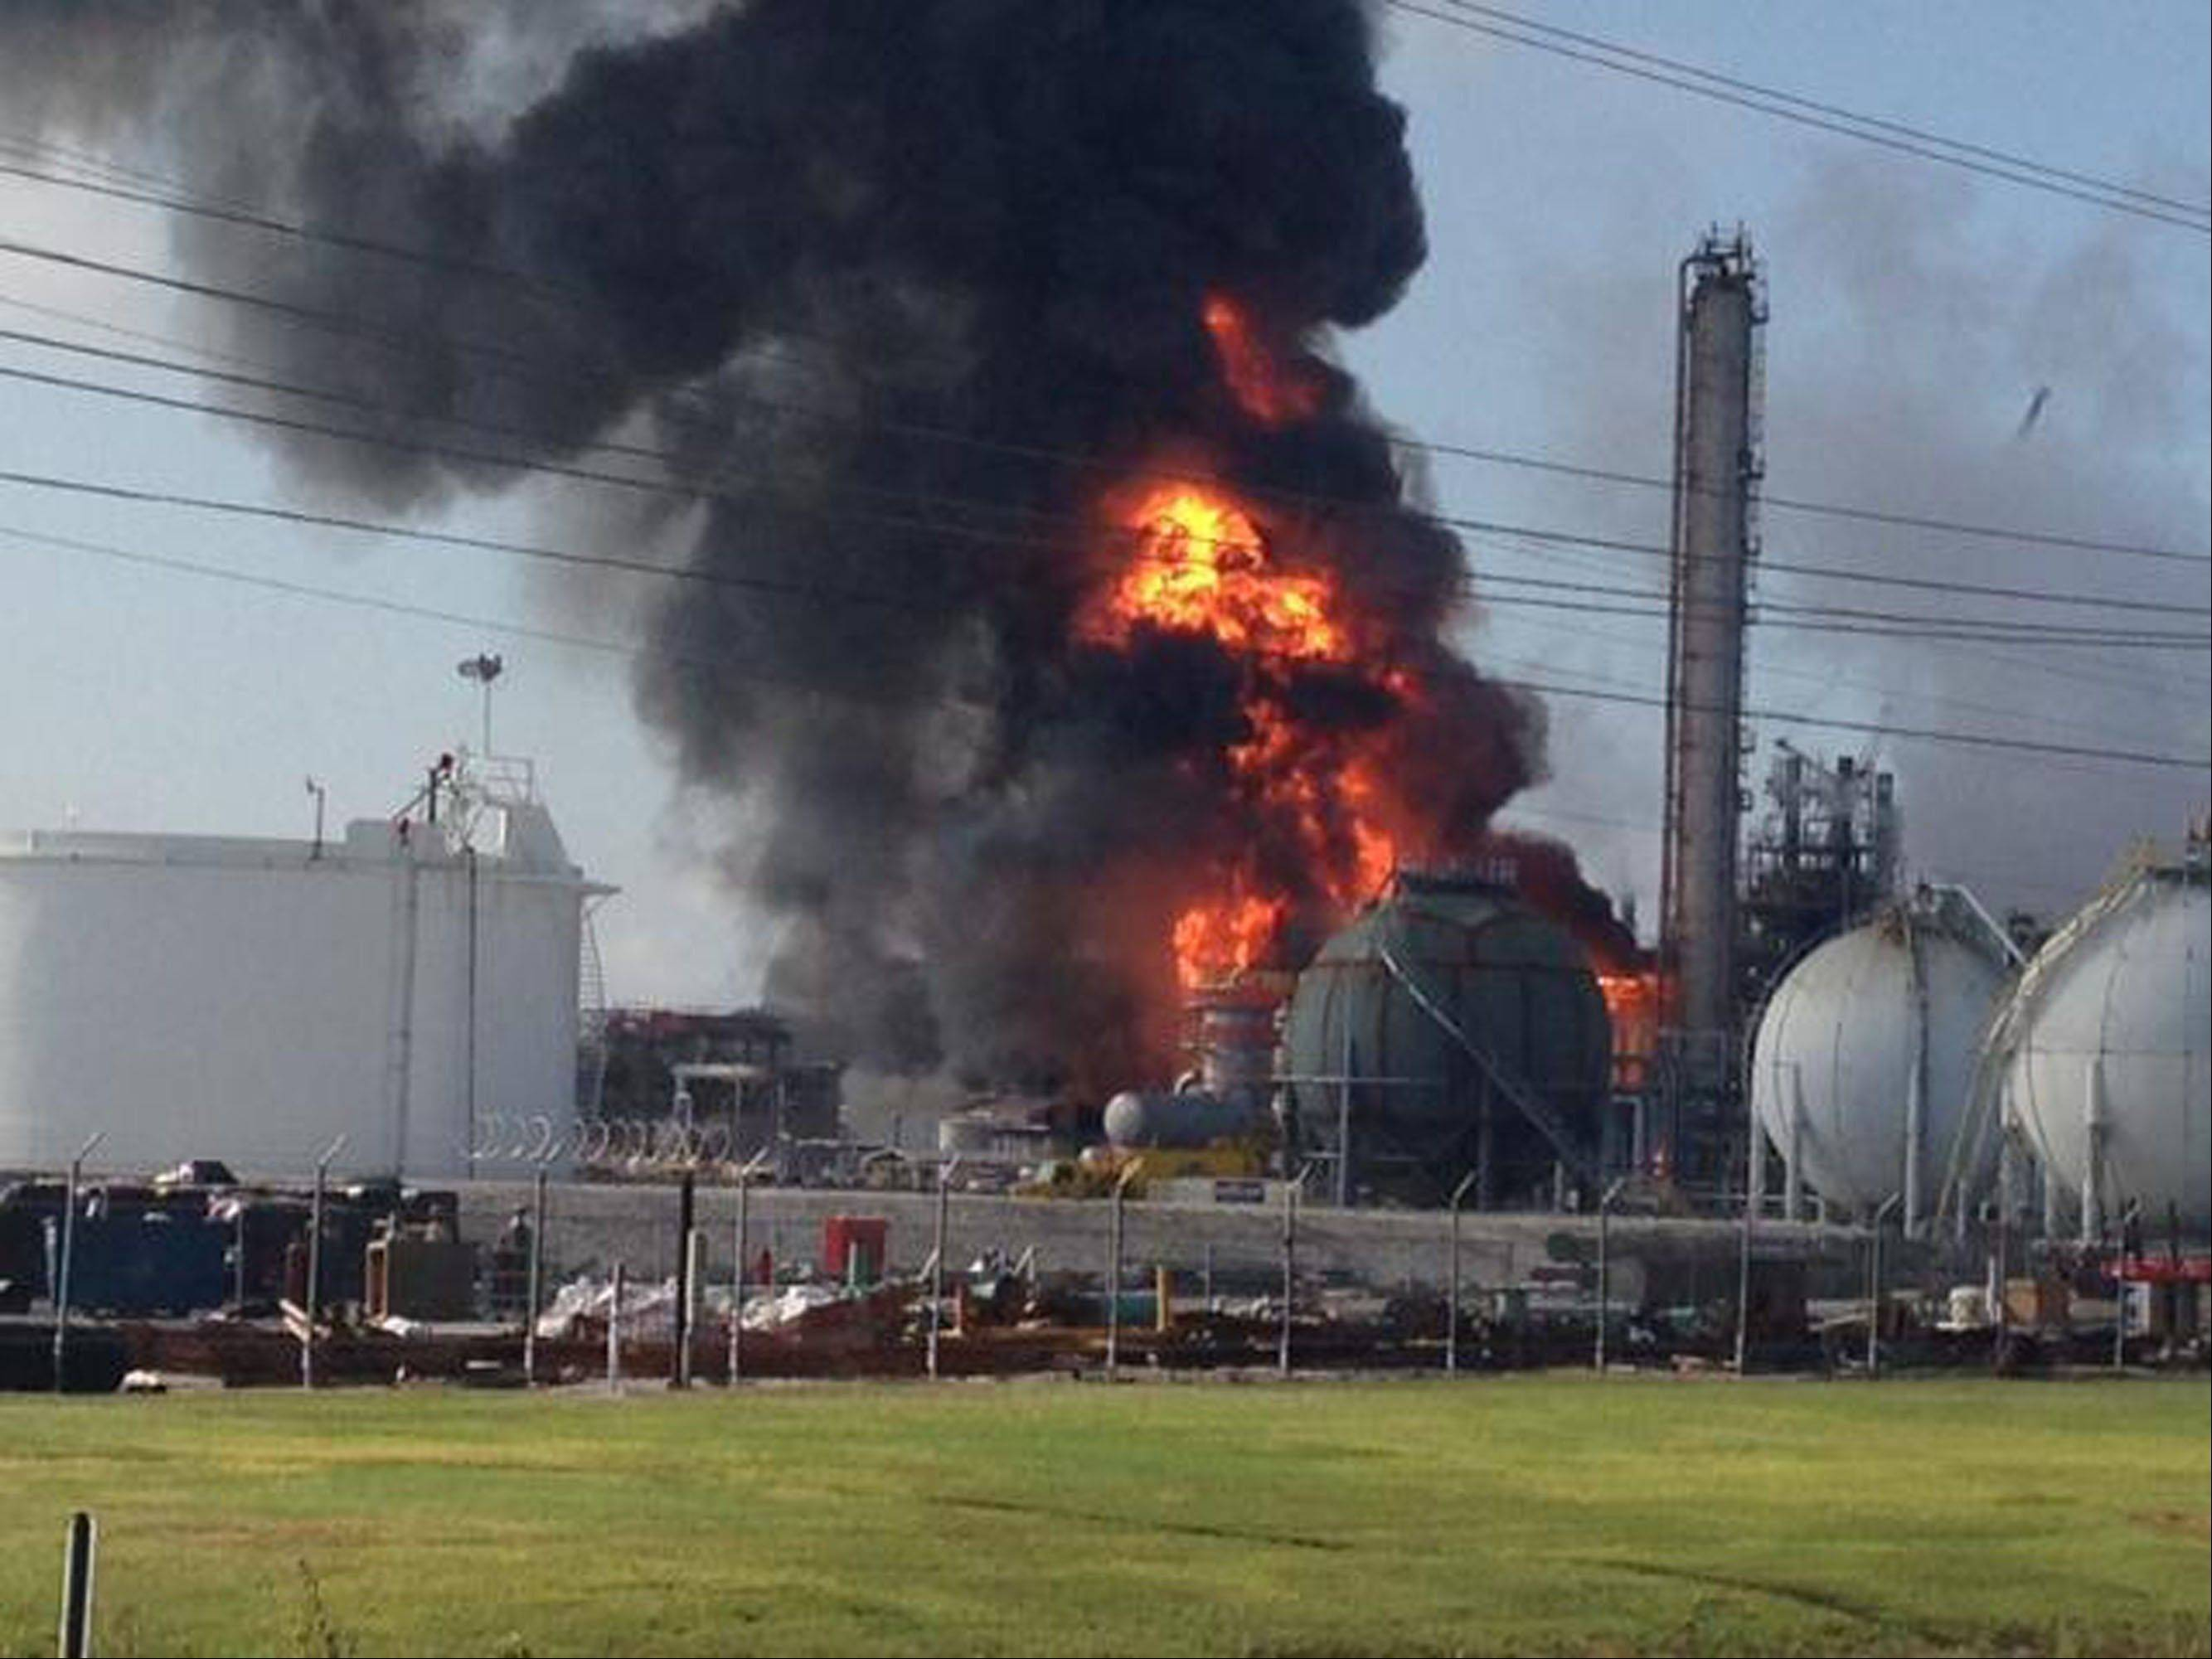 This photo provided by Ryan Meador shows an explosion at The Williams Companies Inc. plant in the Ascension Parish town of Geismar La., Thursday, June 13, 2013. The fire broke out Thursday morning at the plant, which the company�s website says puts out about 1.3 billion pounds of ethylene and 90 million pounds of polymer grade propylene a year.